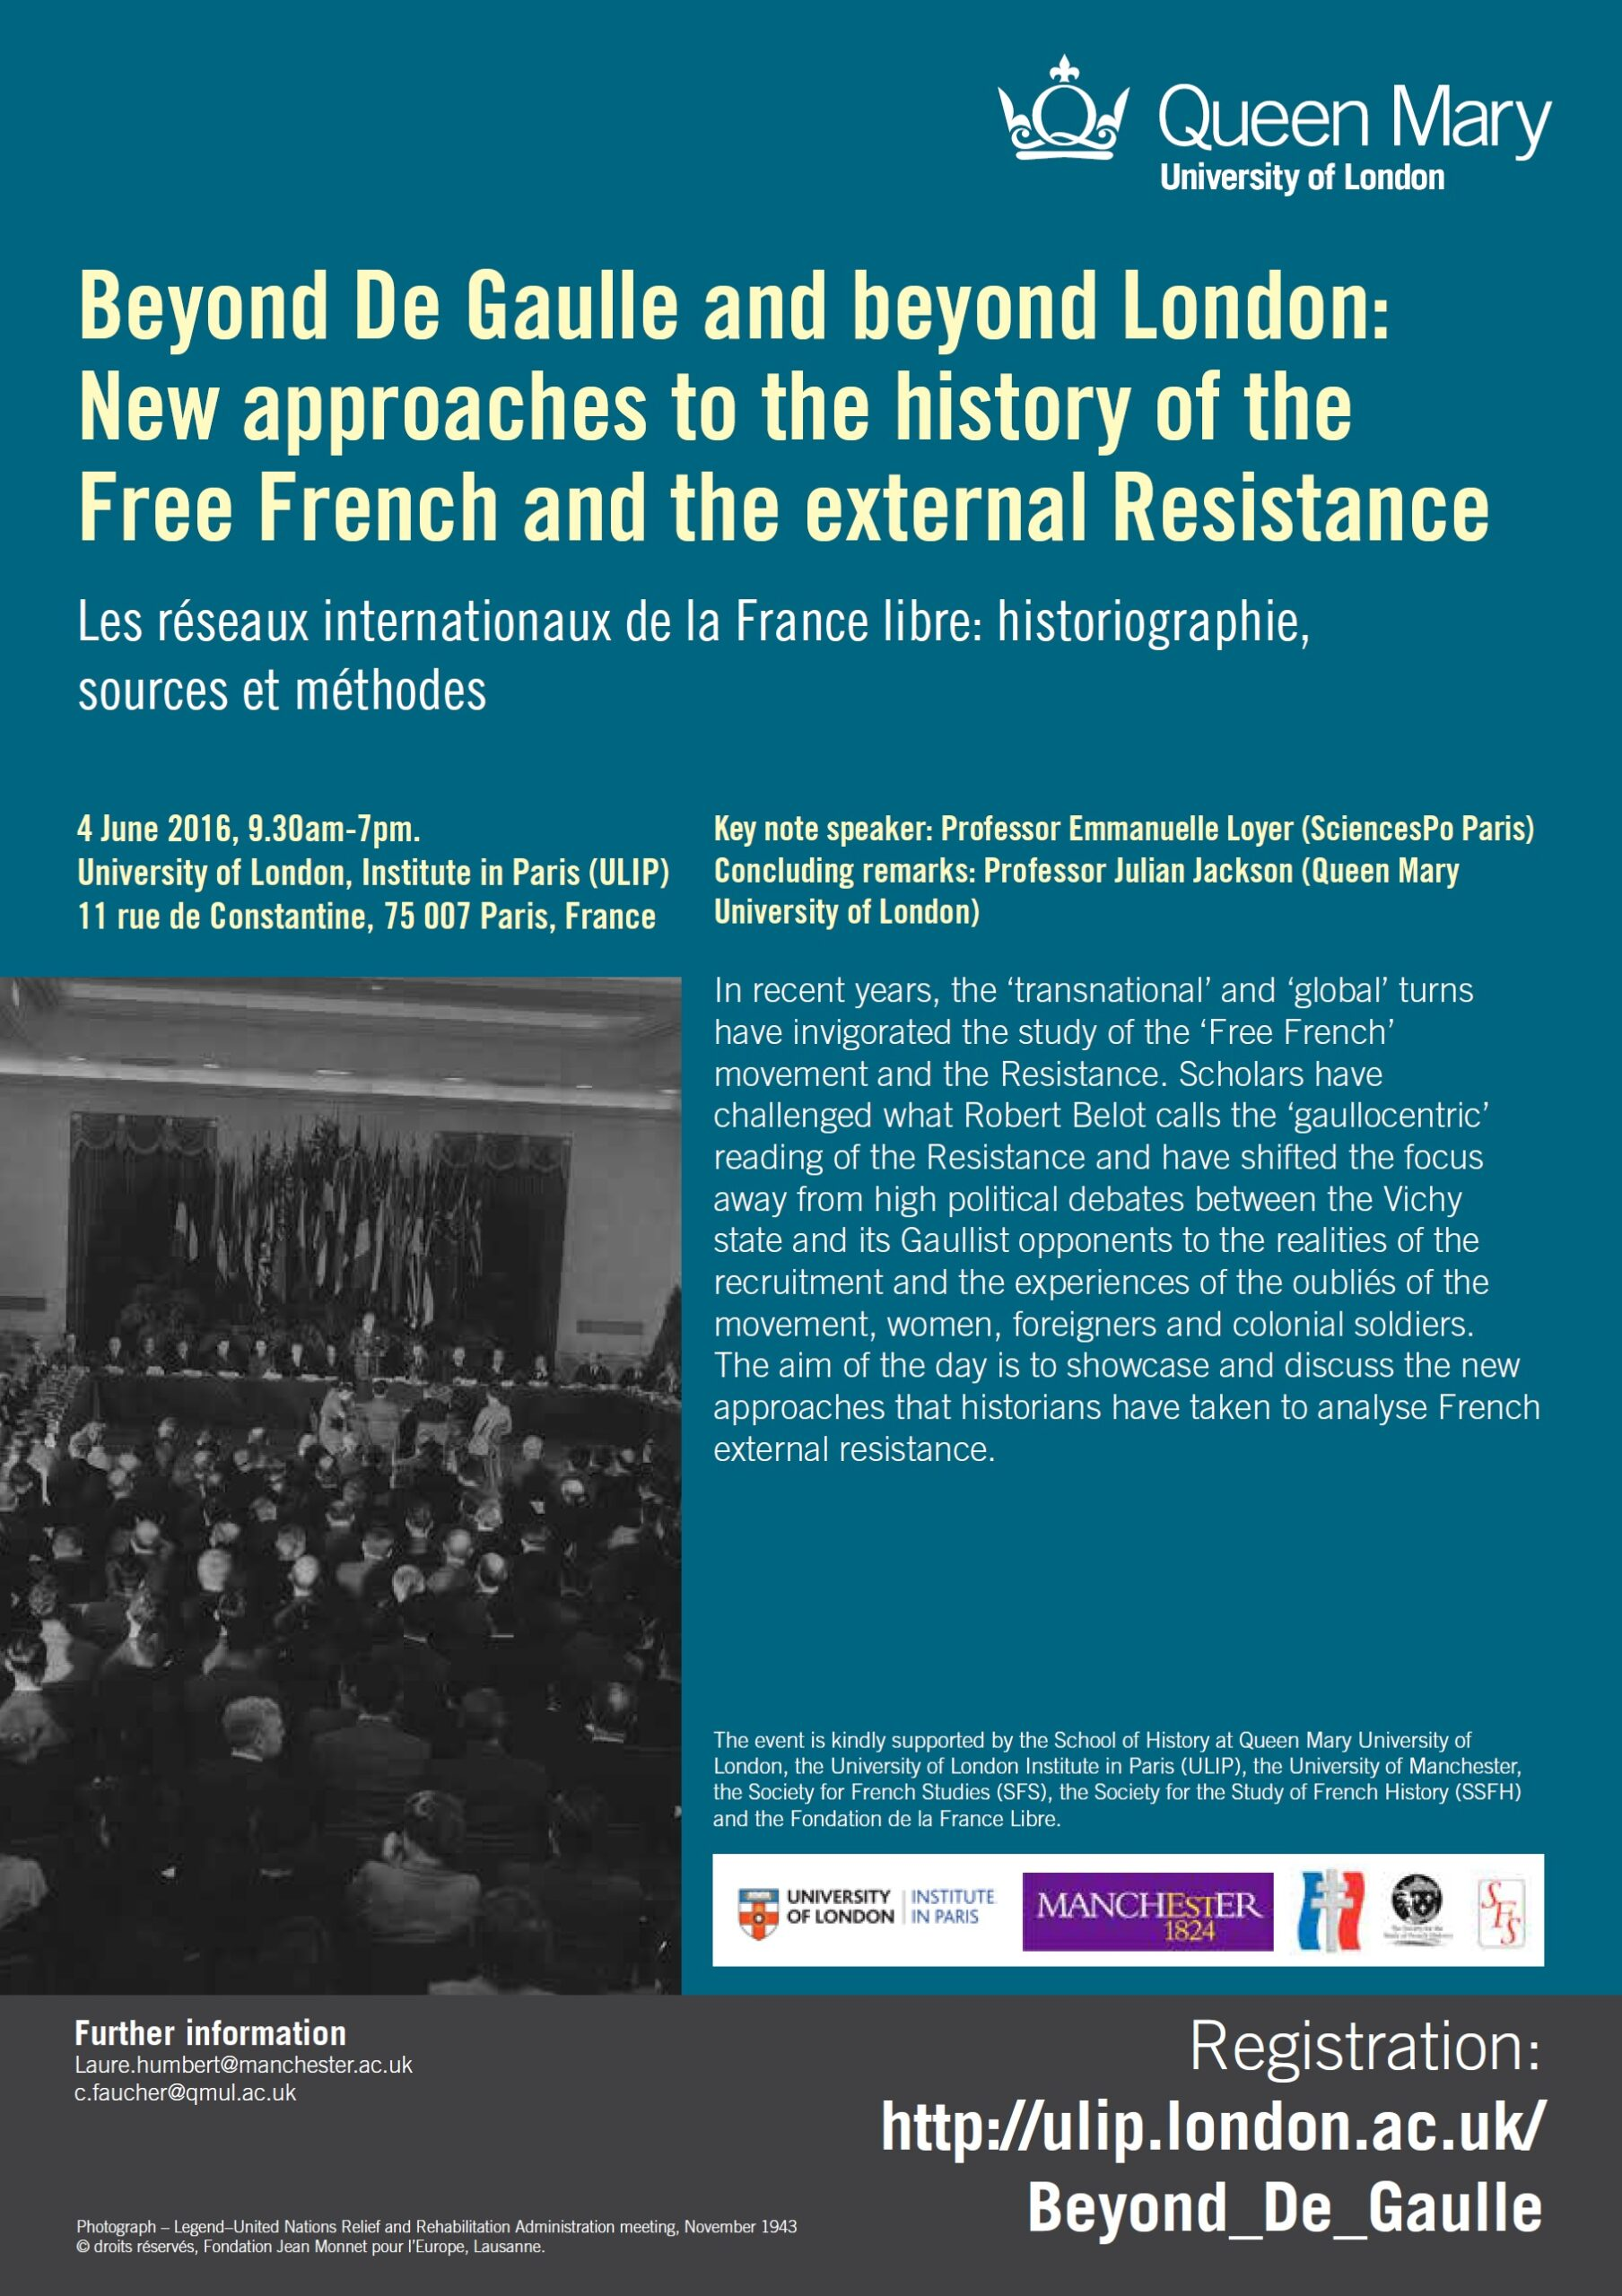 Les réseaux internationaux de la France Libre (symposium international)